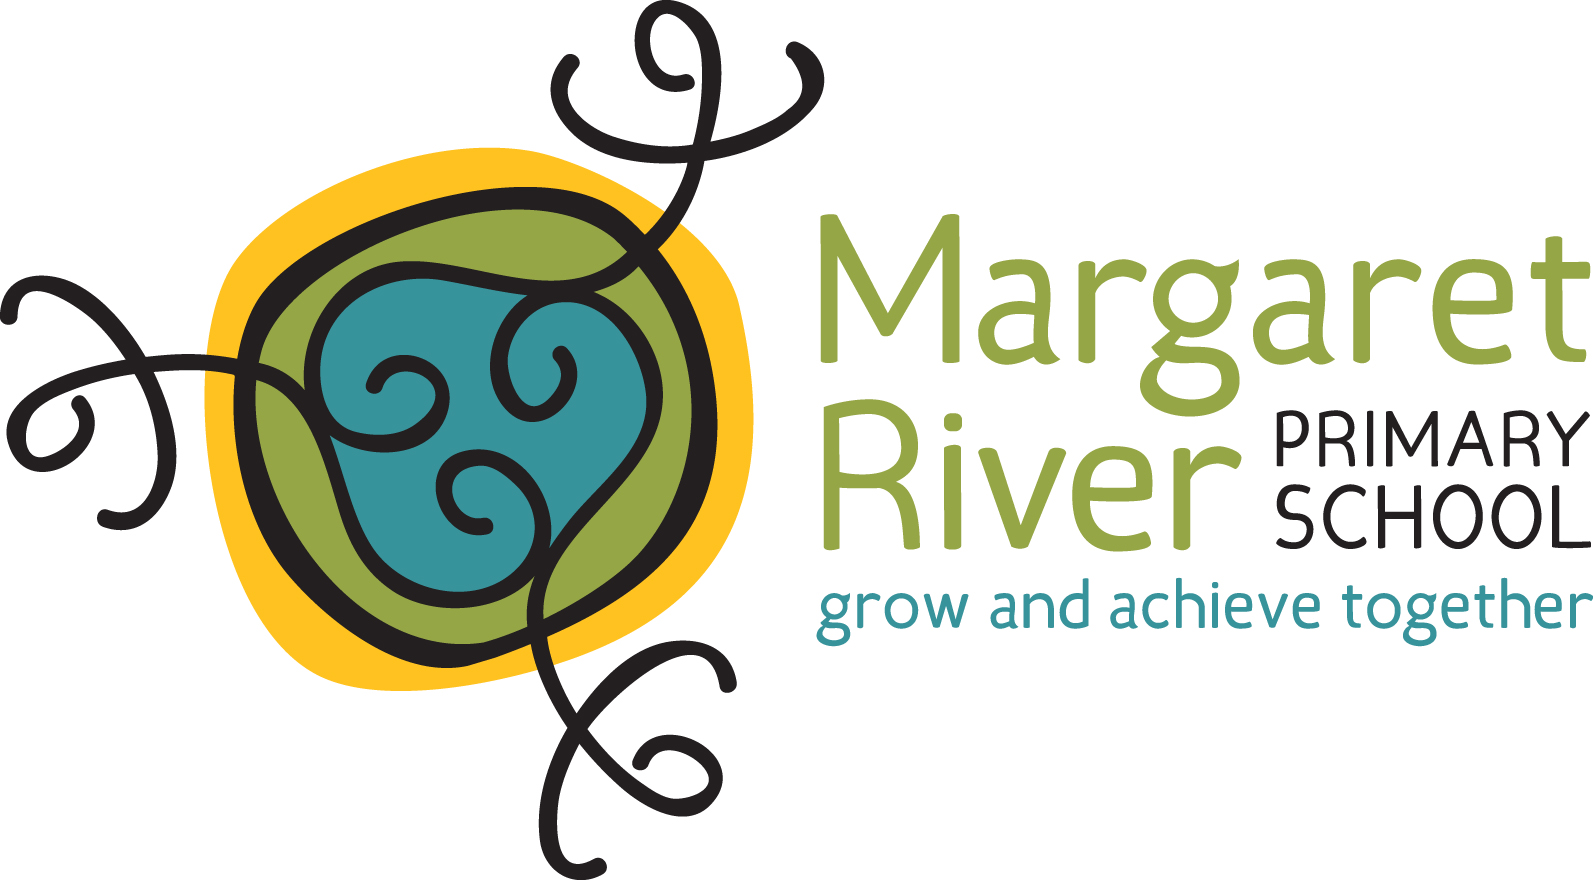 margaret river primary school grow and achieve together